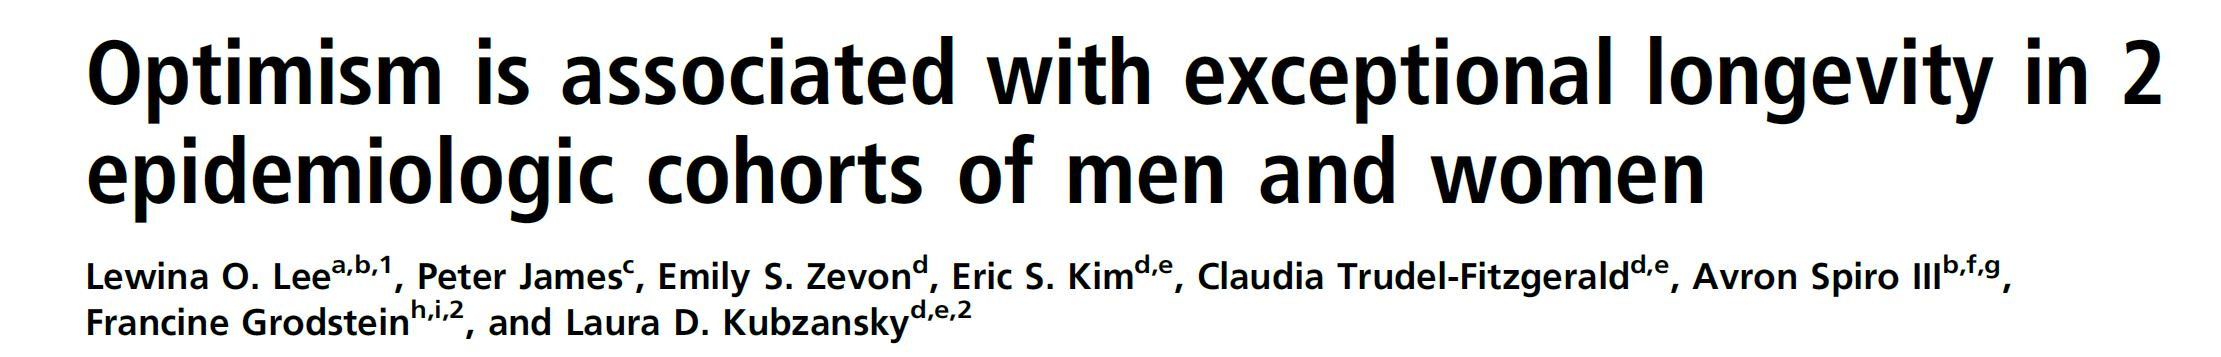 Optimism is associated with exceptional longevity in 2 epidemiologic cohorts of men and women